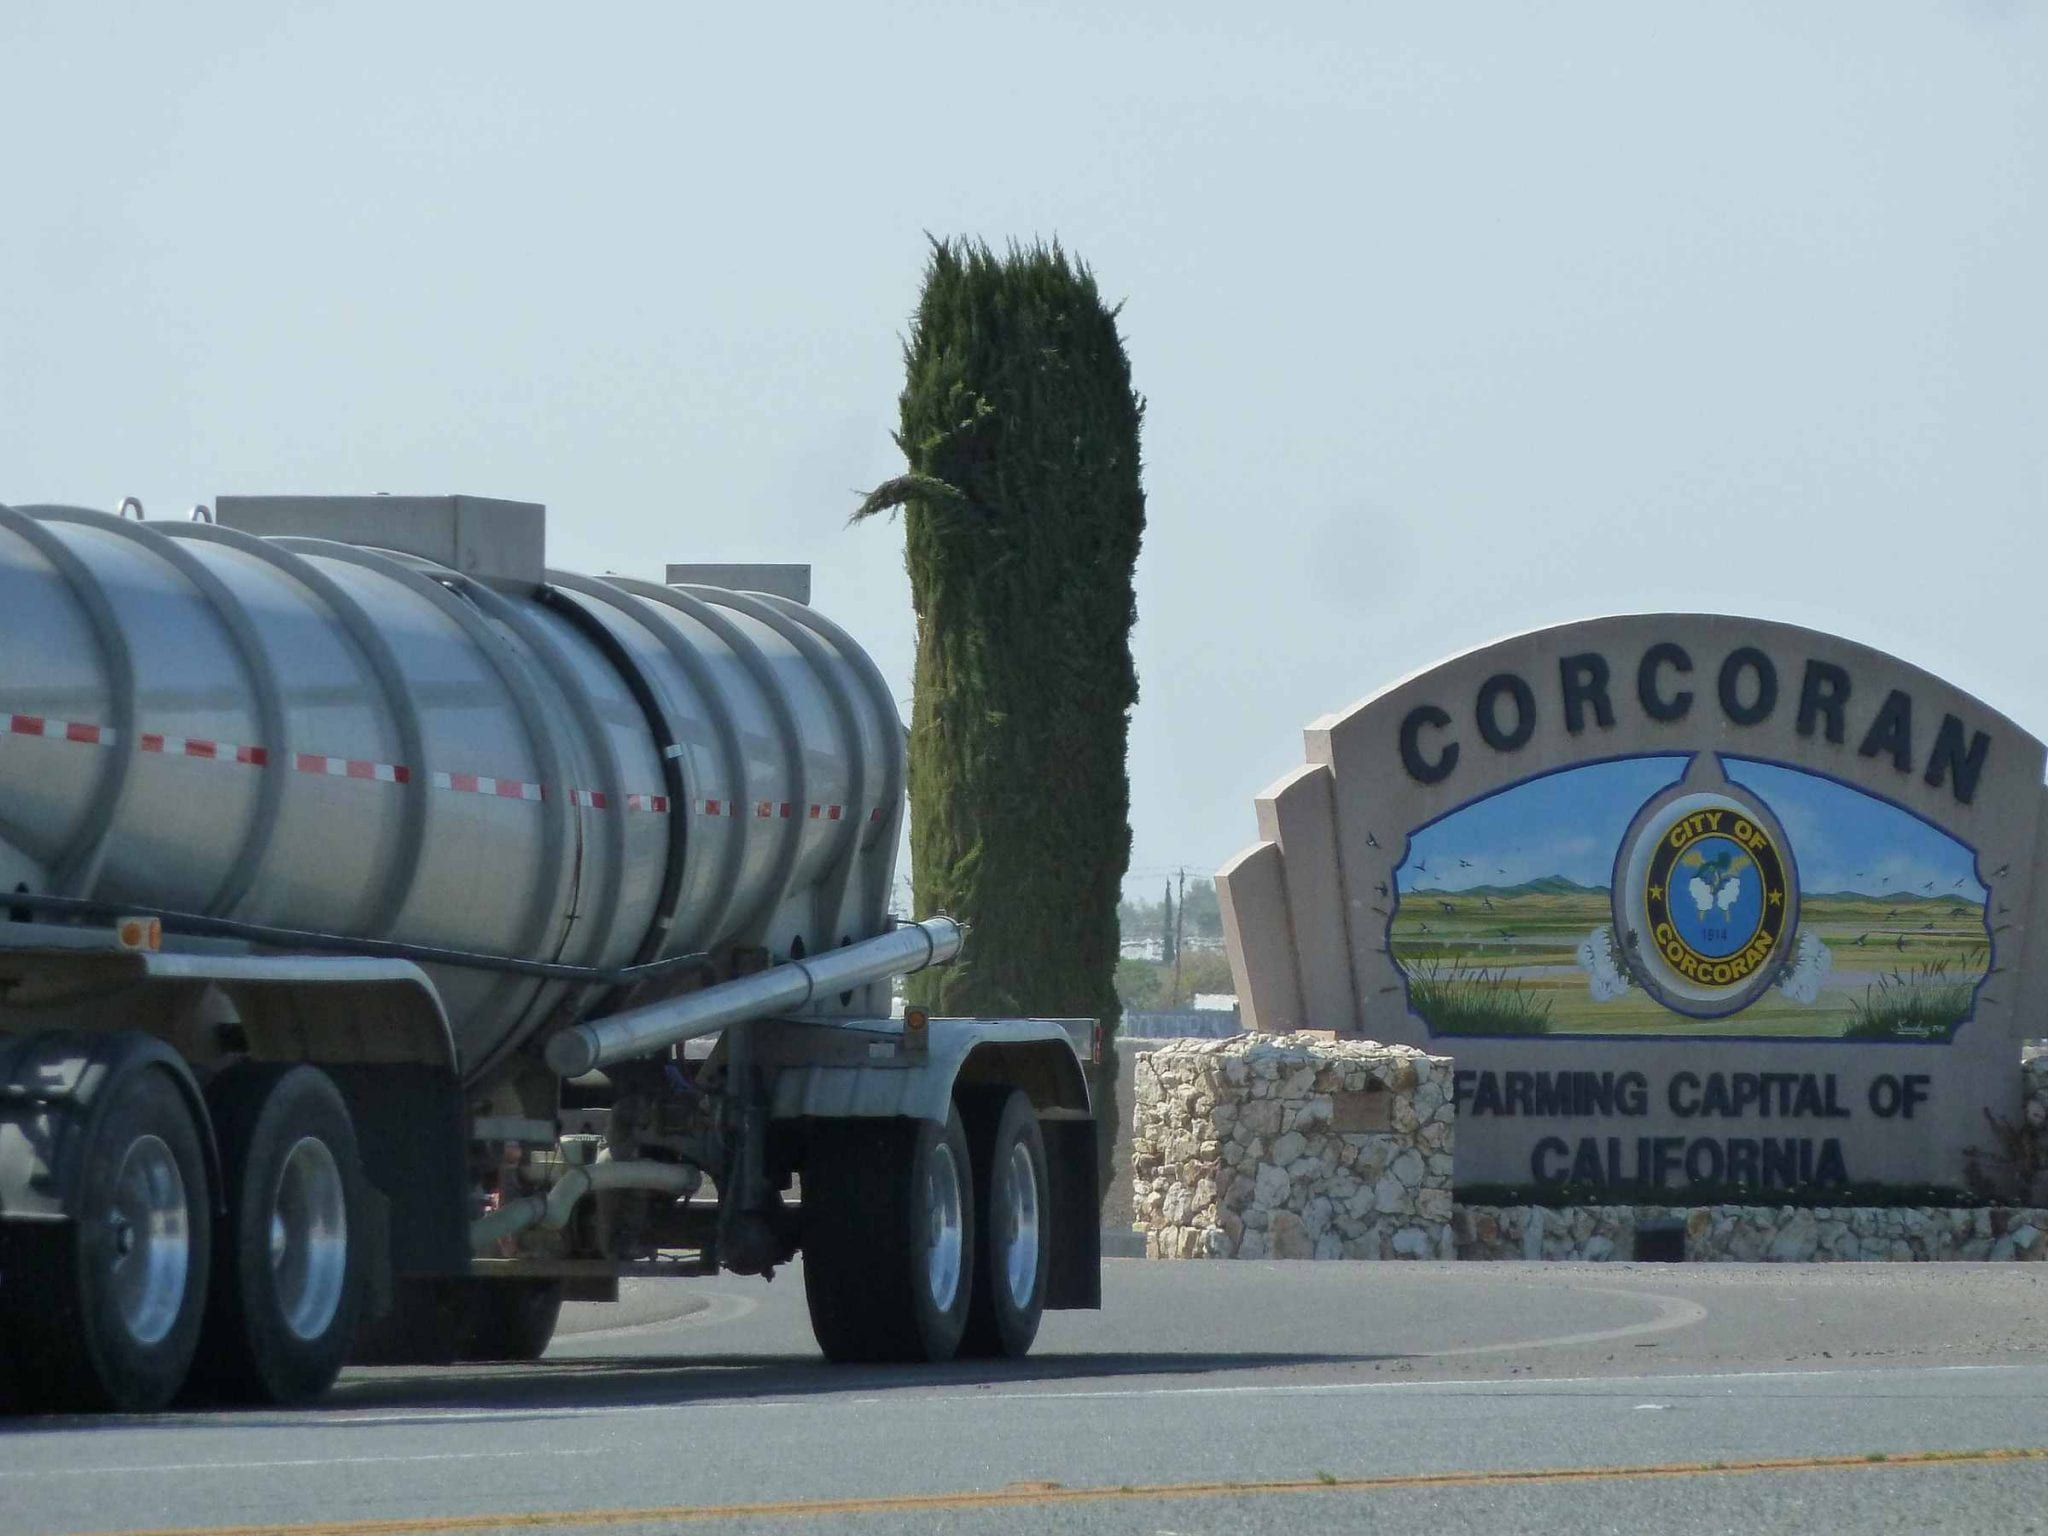 Corcoran, CA is sinking